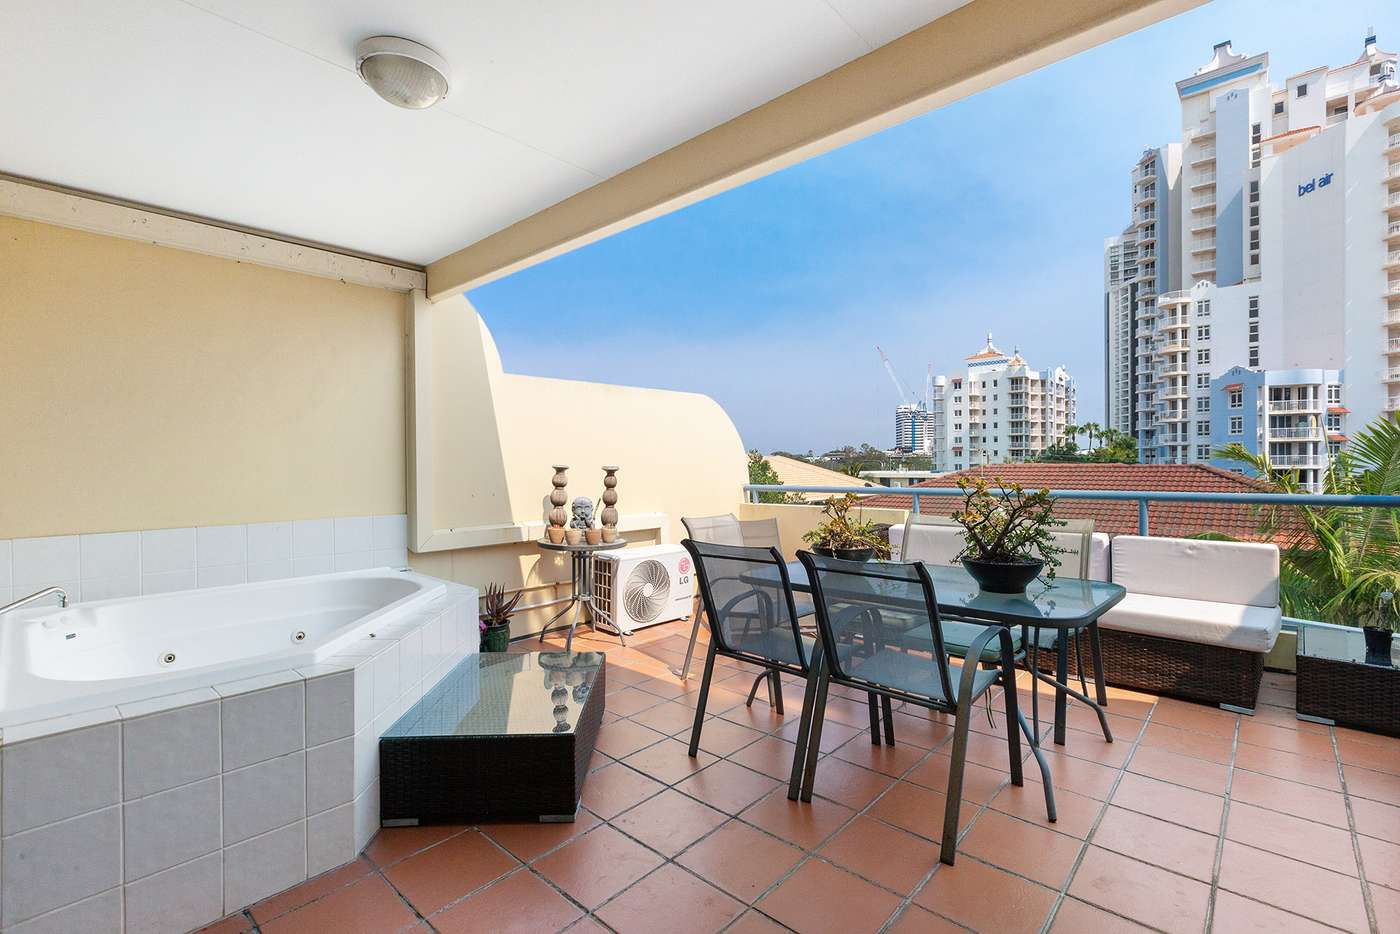 Main view of Homely apartment listing, 37/2607 Gold Coast Highway, Mermaid Beach QLD 4218